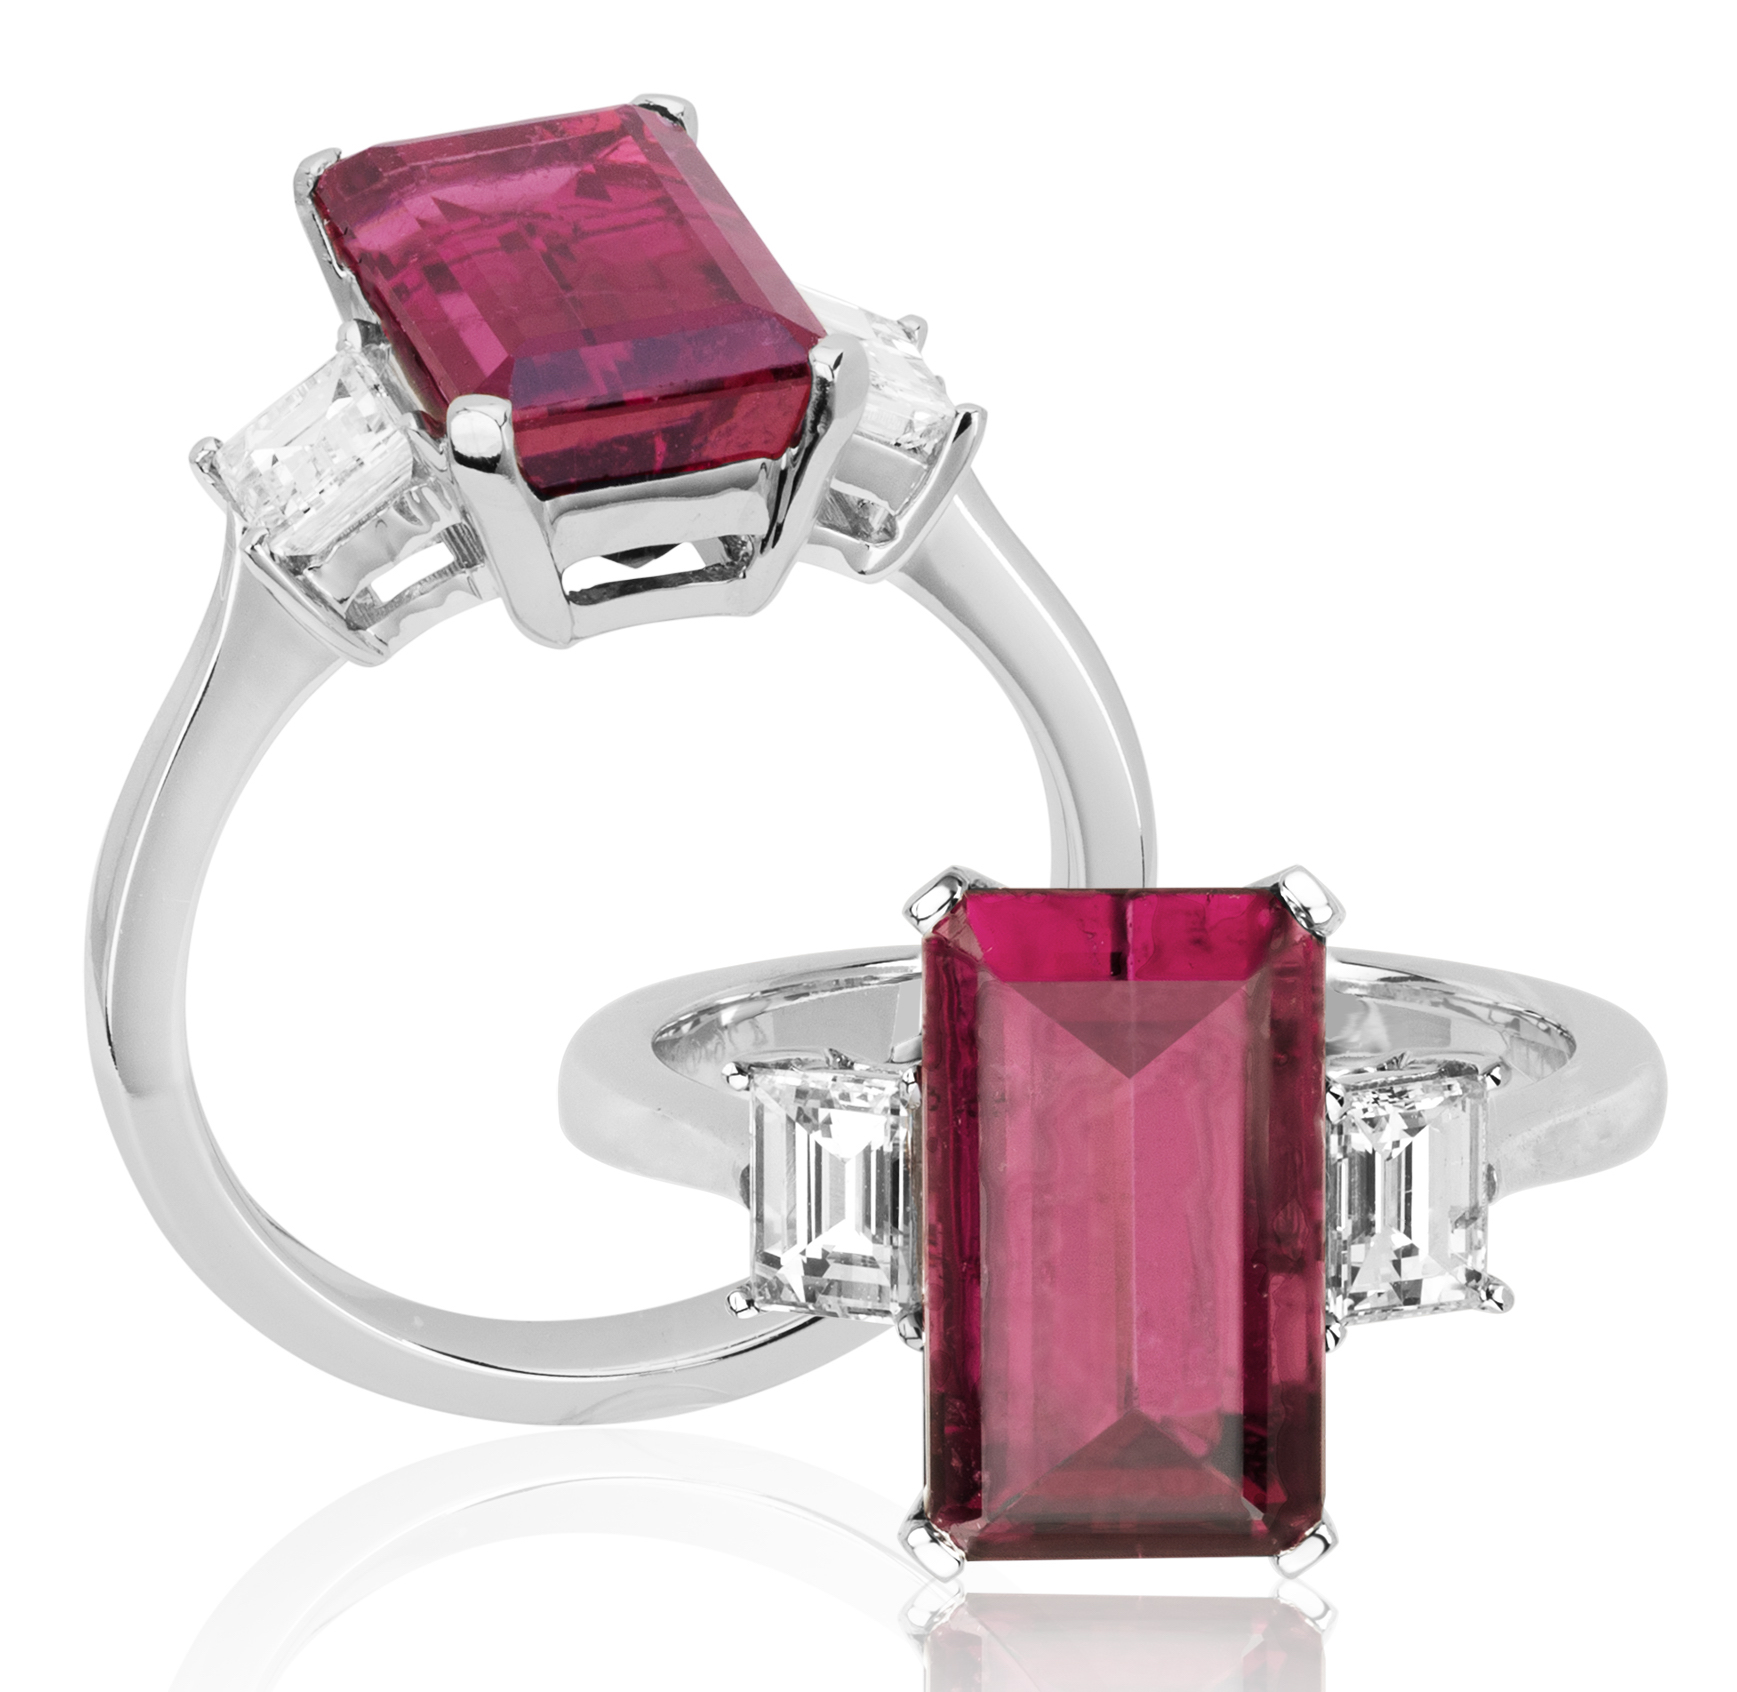 Artistry Ltd pink tourmaline ring | JCK On Your Market